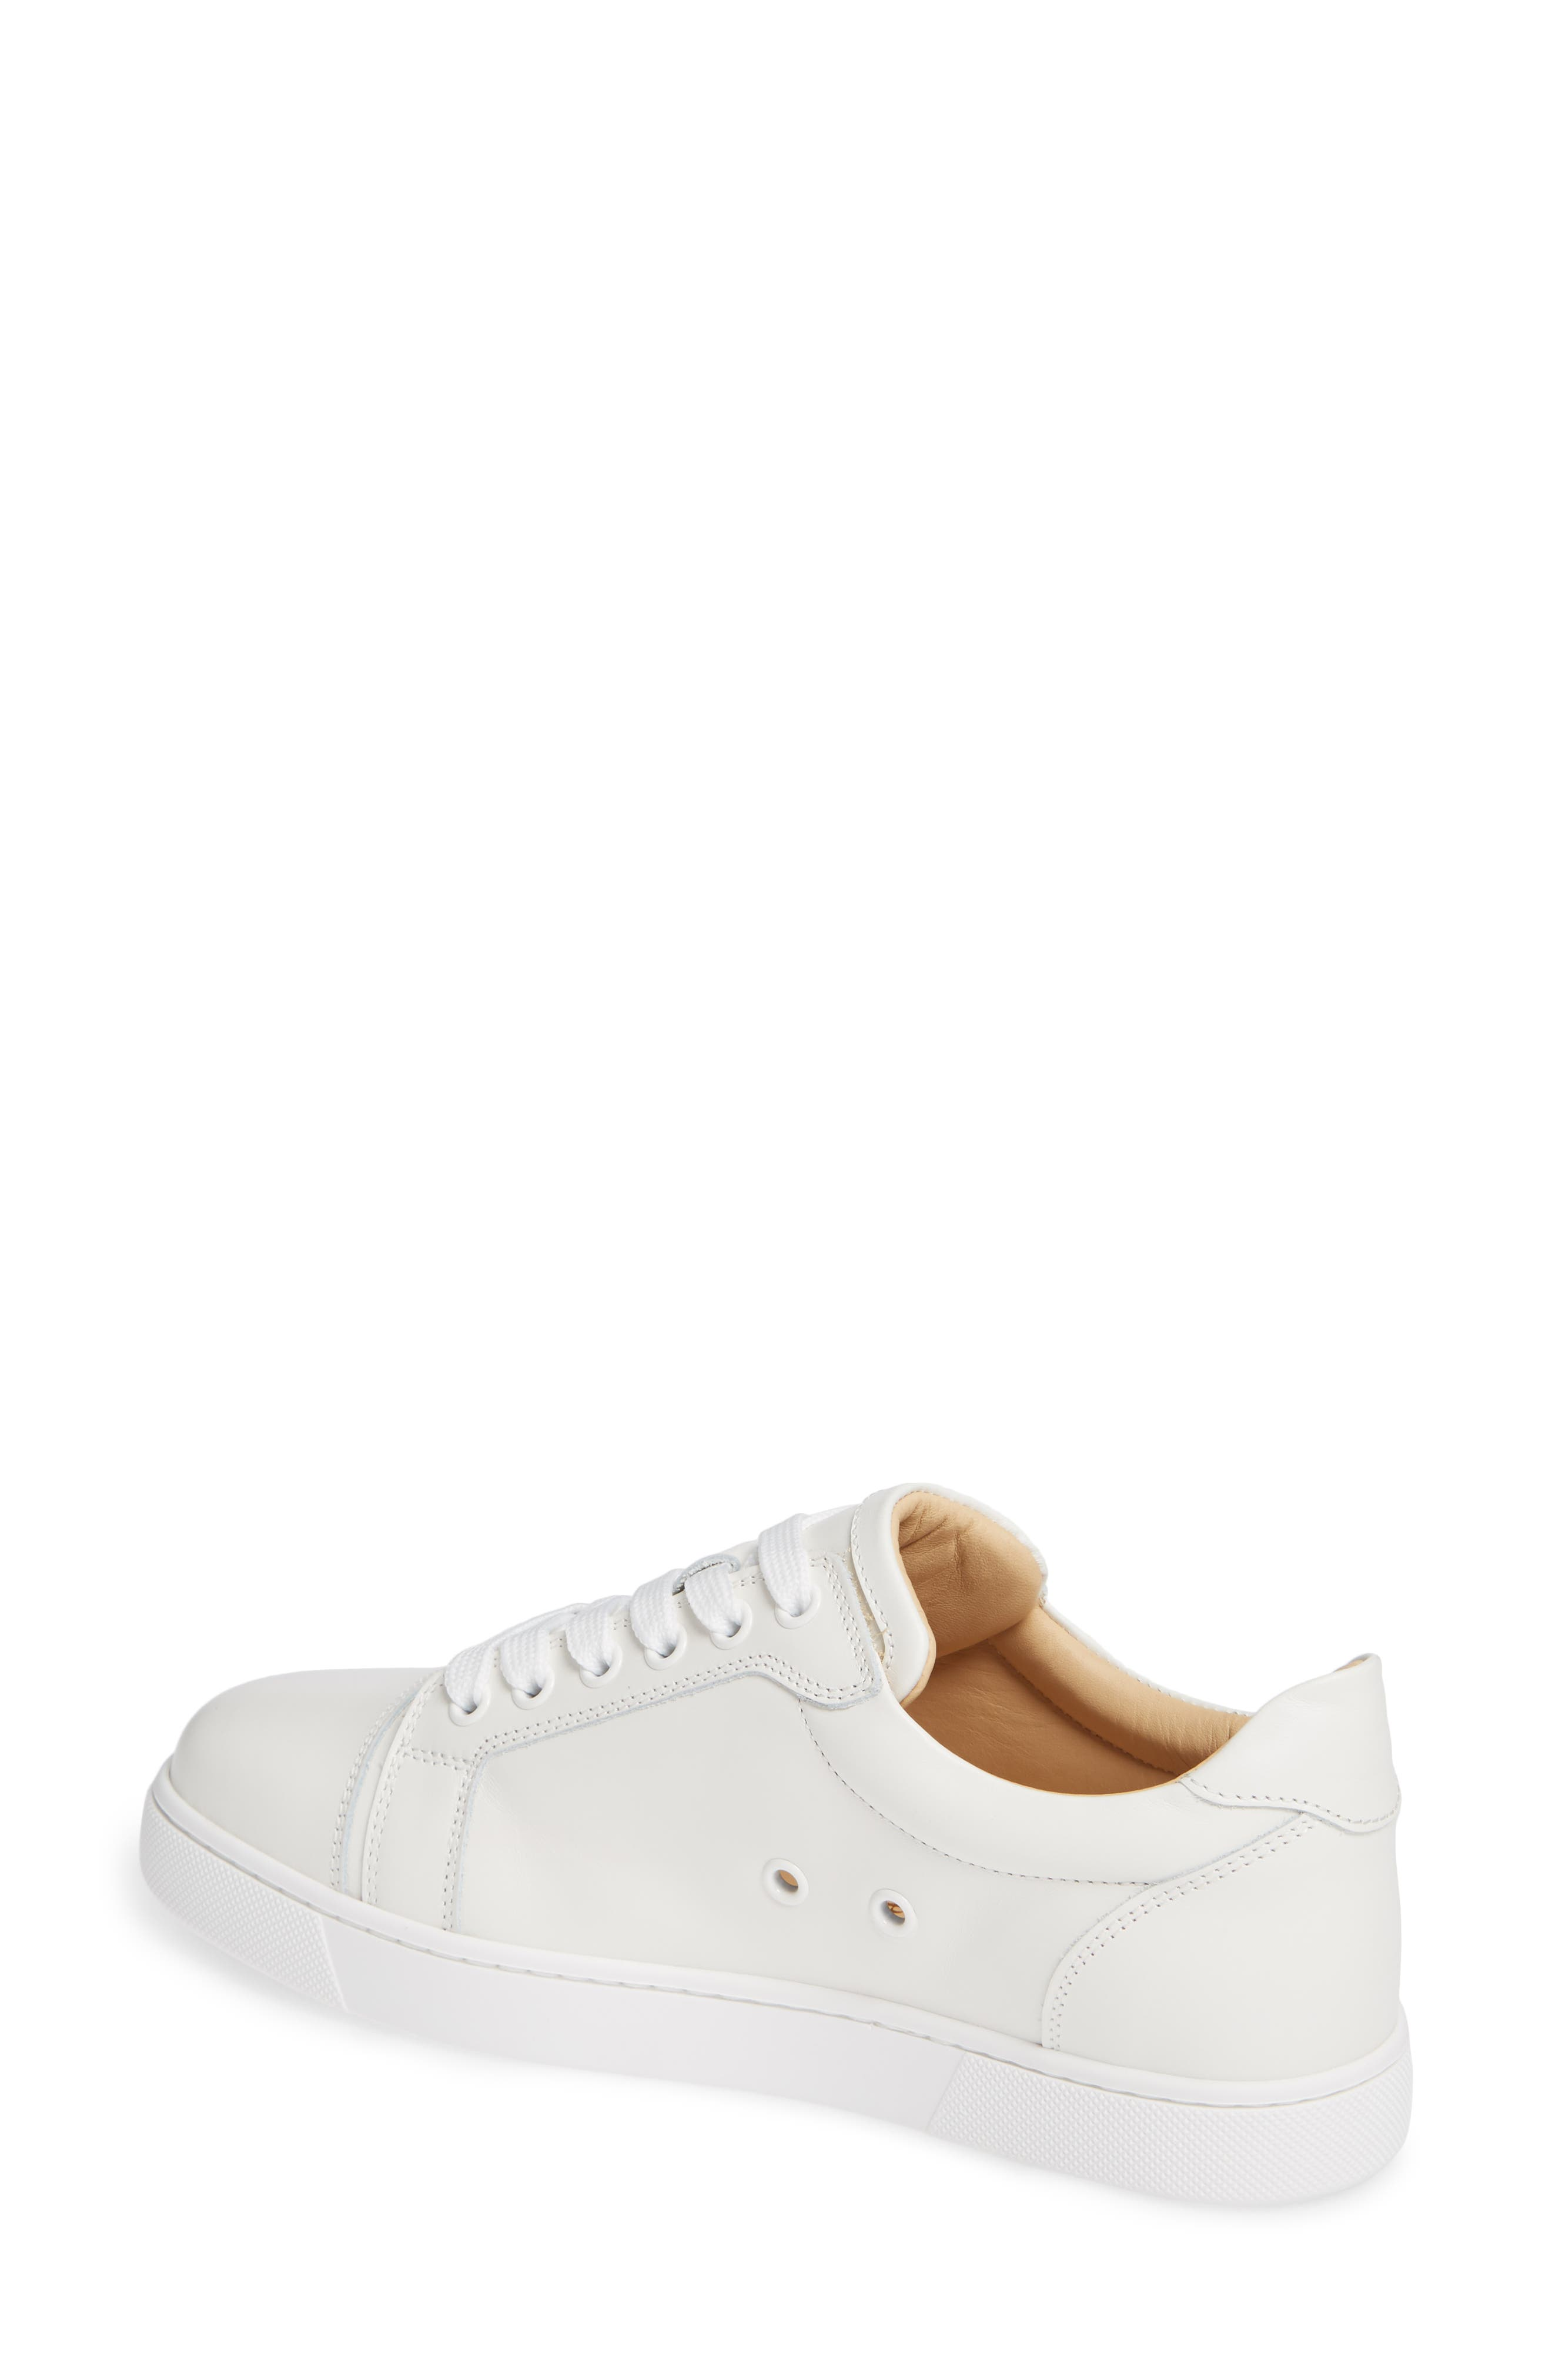 Veira Lace-Up Sneaker,                             Alternate thumbnail 2, color,                             SNOW WHITE